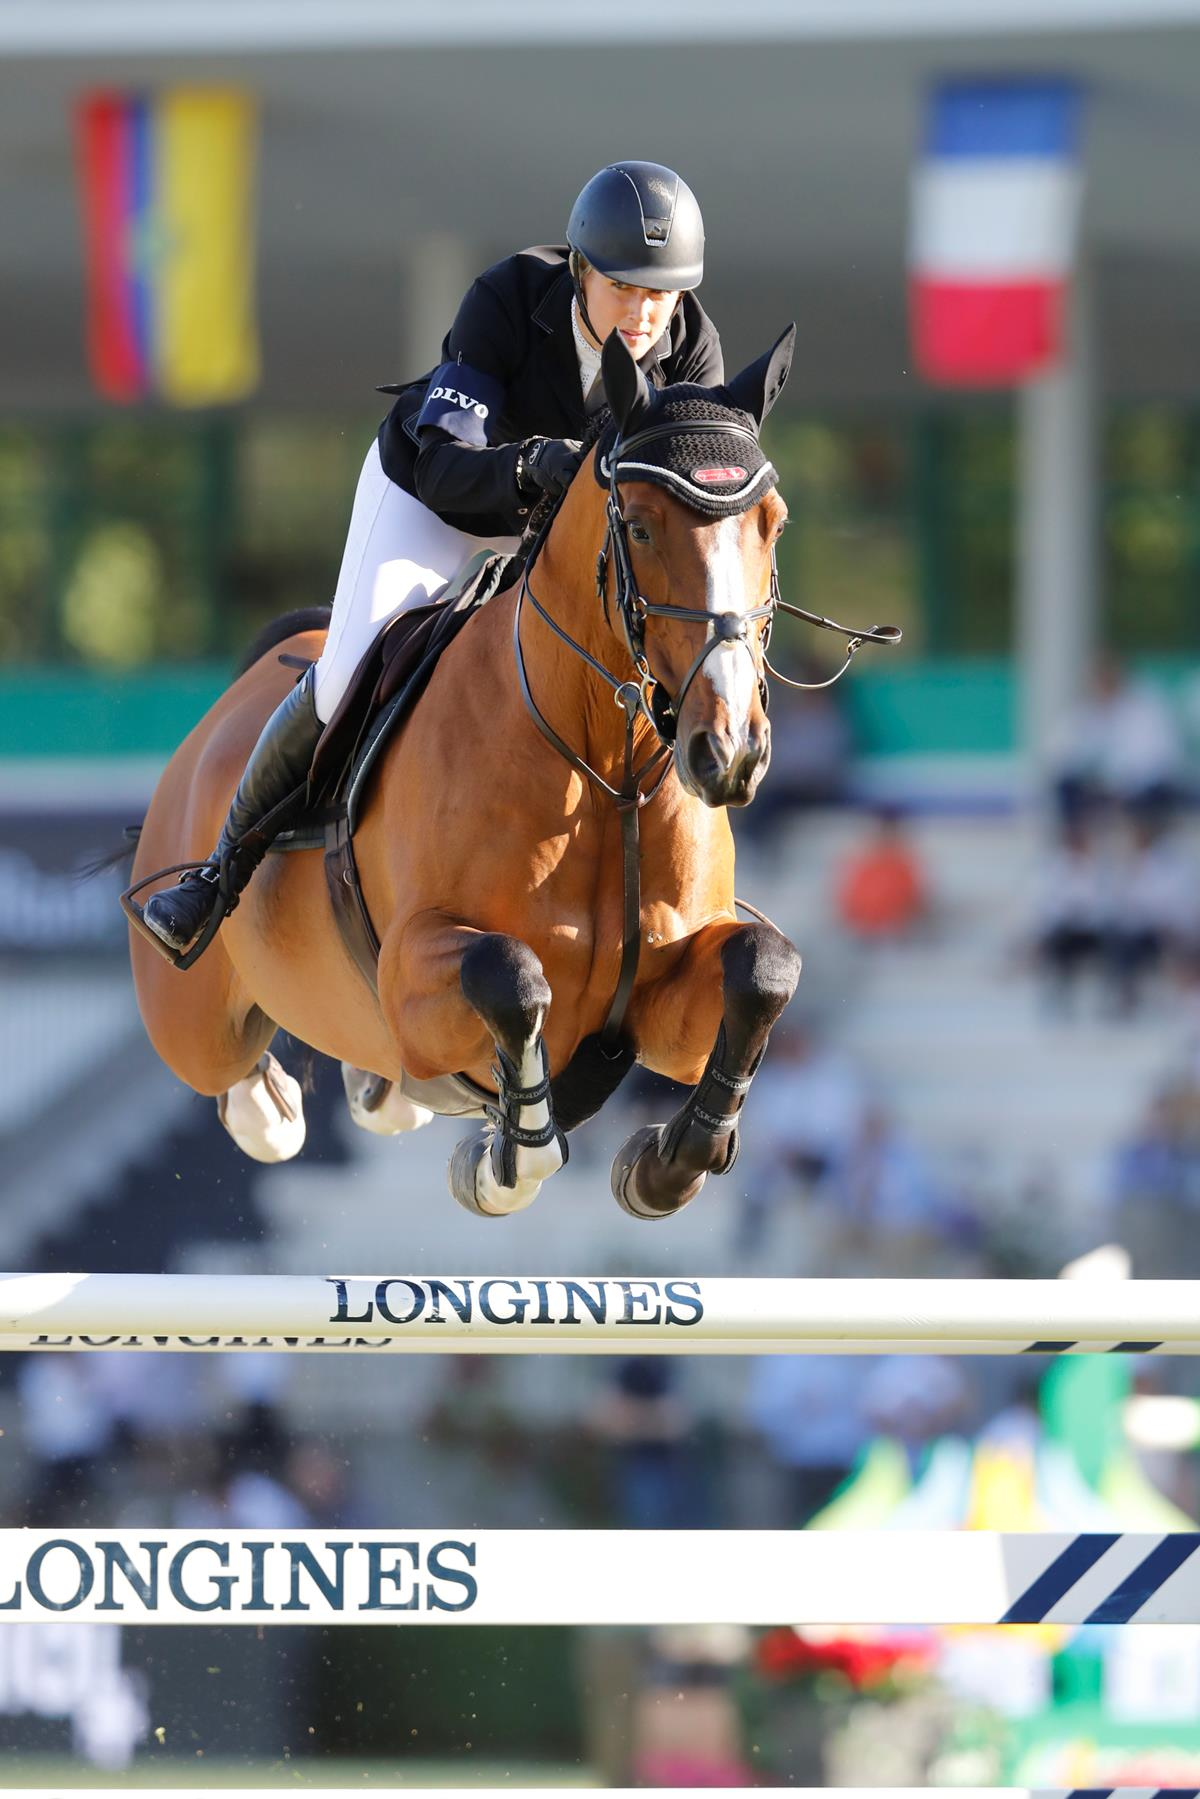 LGCT 2016: Laura Renwick triumphs in phenomenal LGCT Madrid opening day double win.